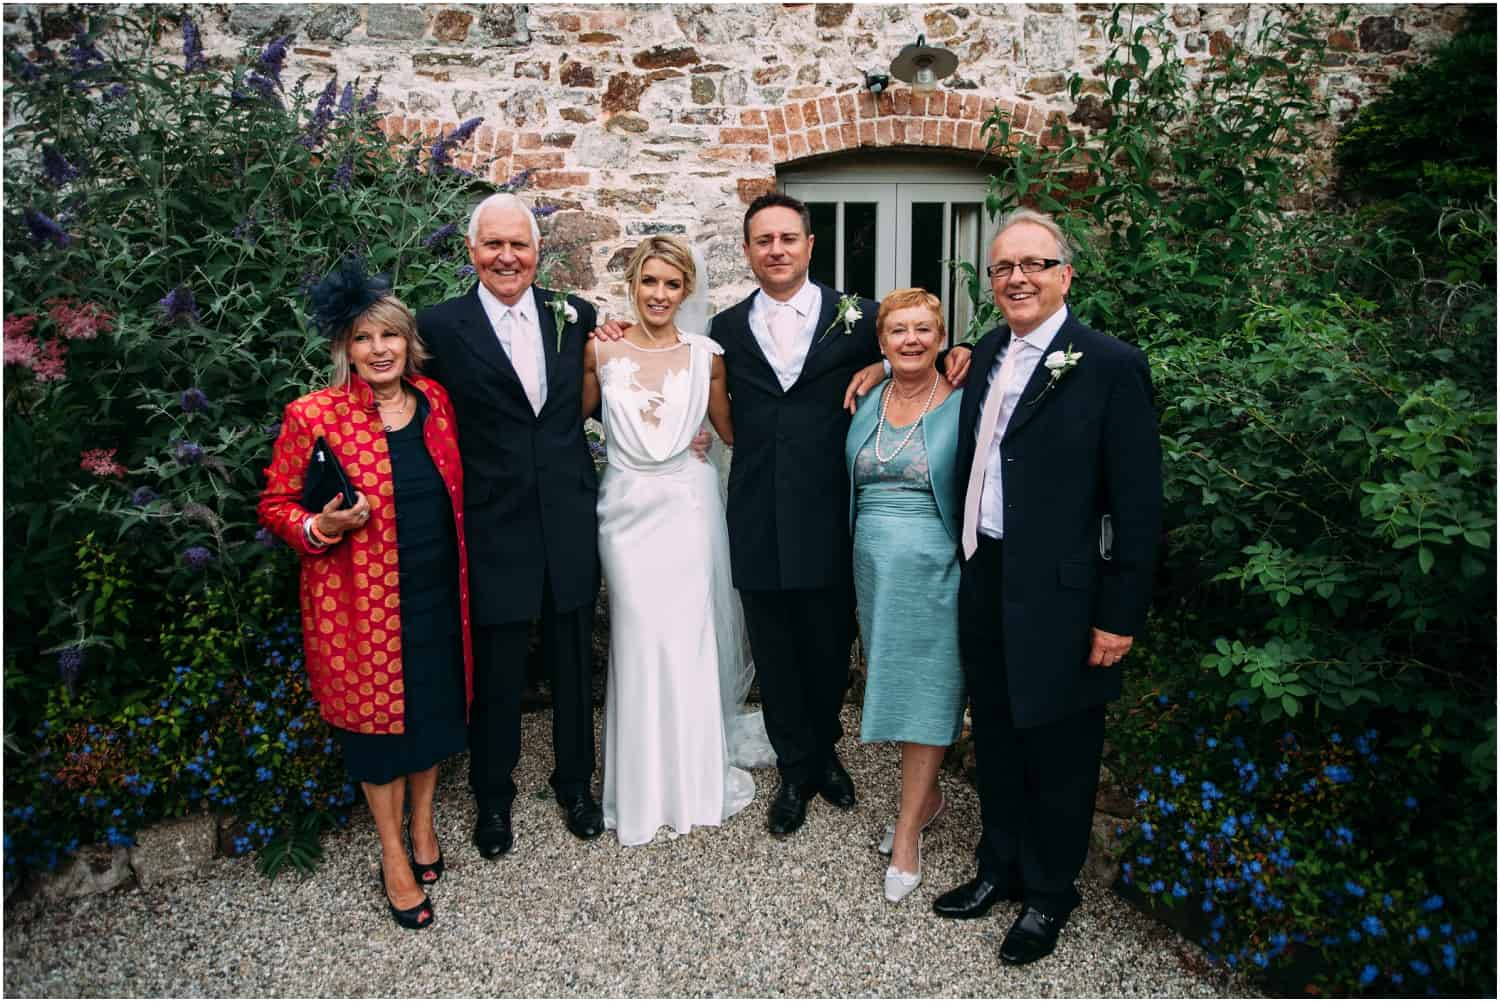 Chloe & Tom Wedding - Images by Lucy Turnbull